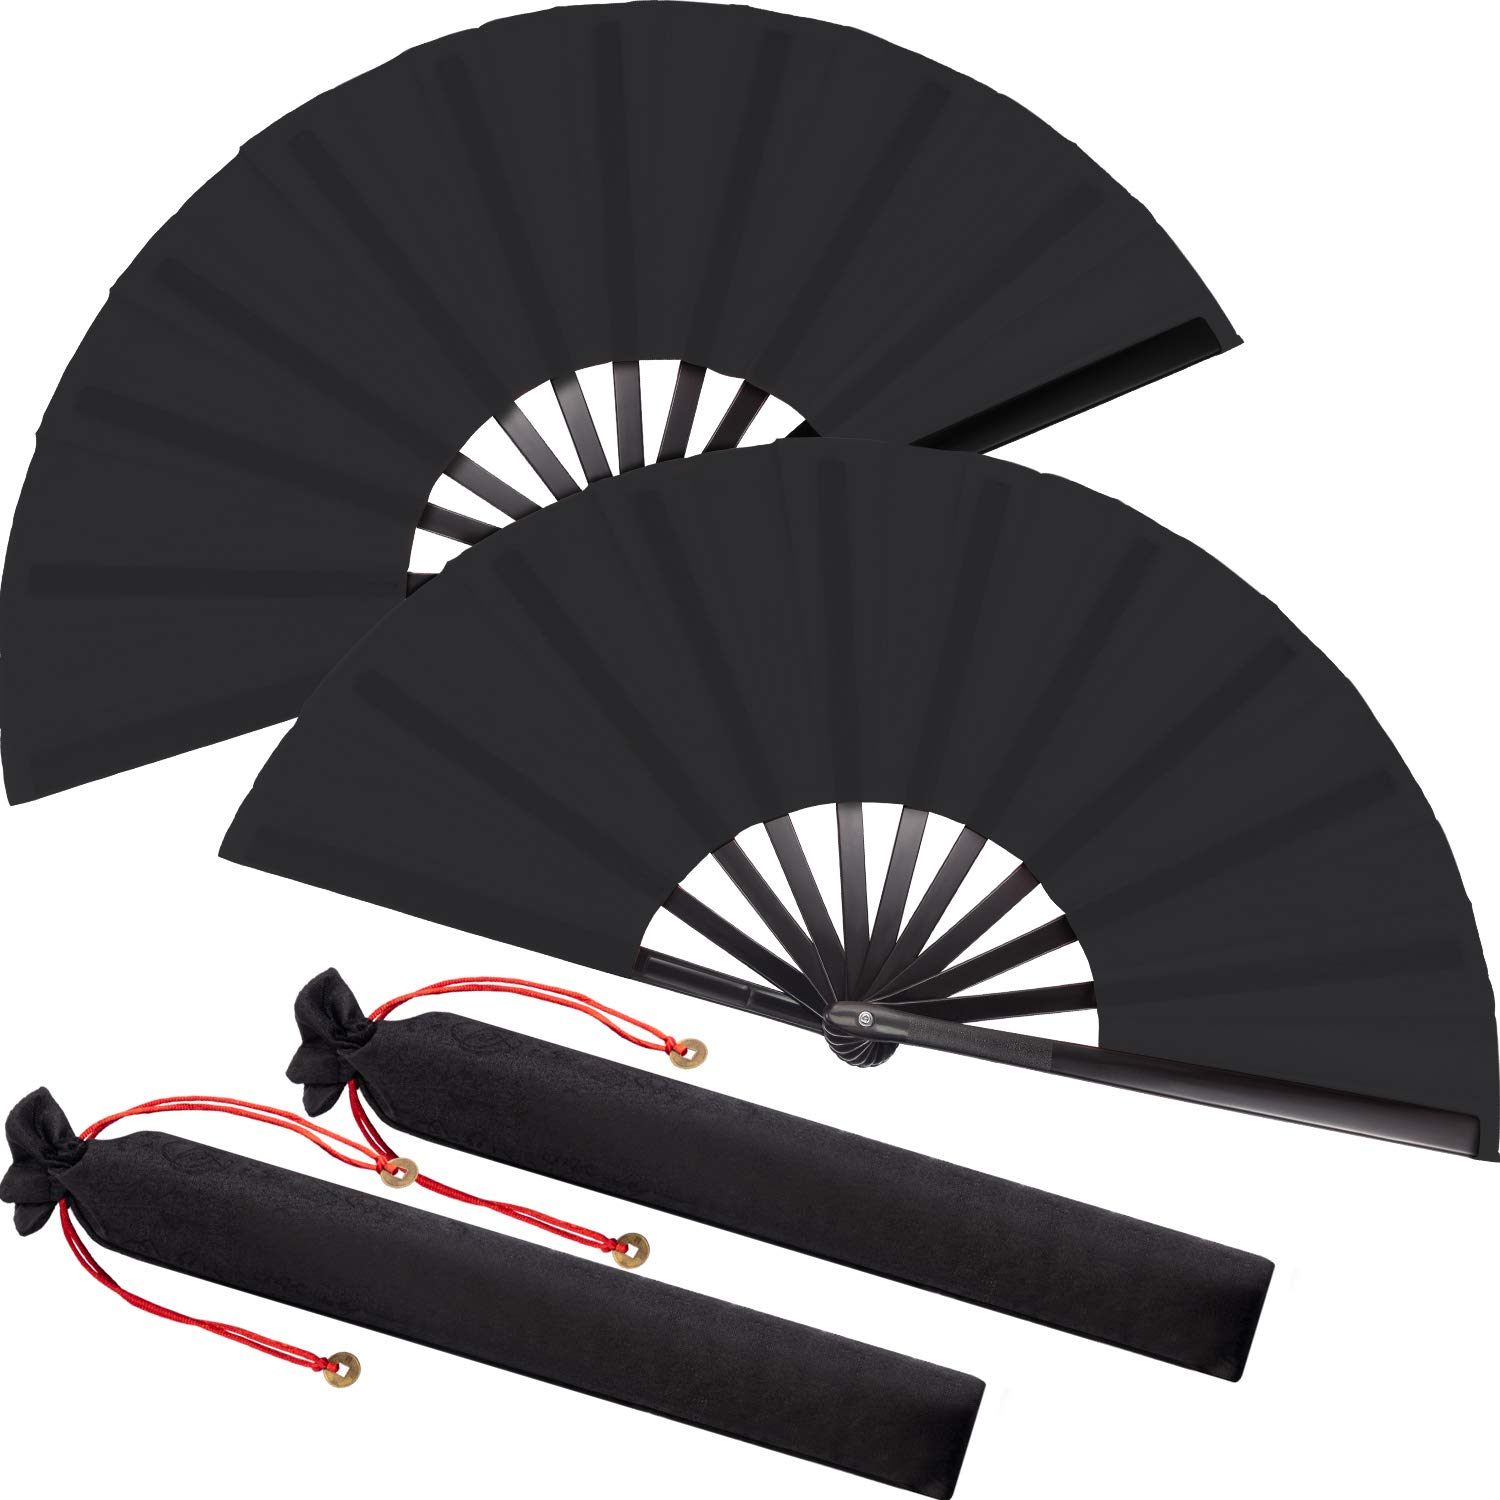 Large Folding Silk Hand Fan Hand Folding Fans Chinese Tai Chi Folding Fan for Men and Women Performance, Dance, Decorations, Festival, Gift (Black, 2 Packs) by Maitys